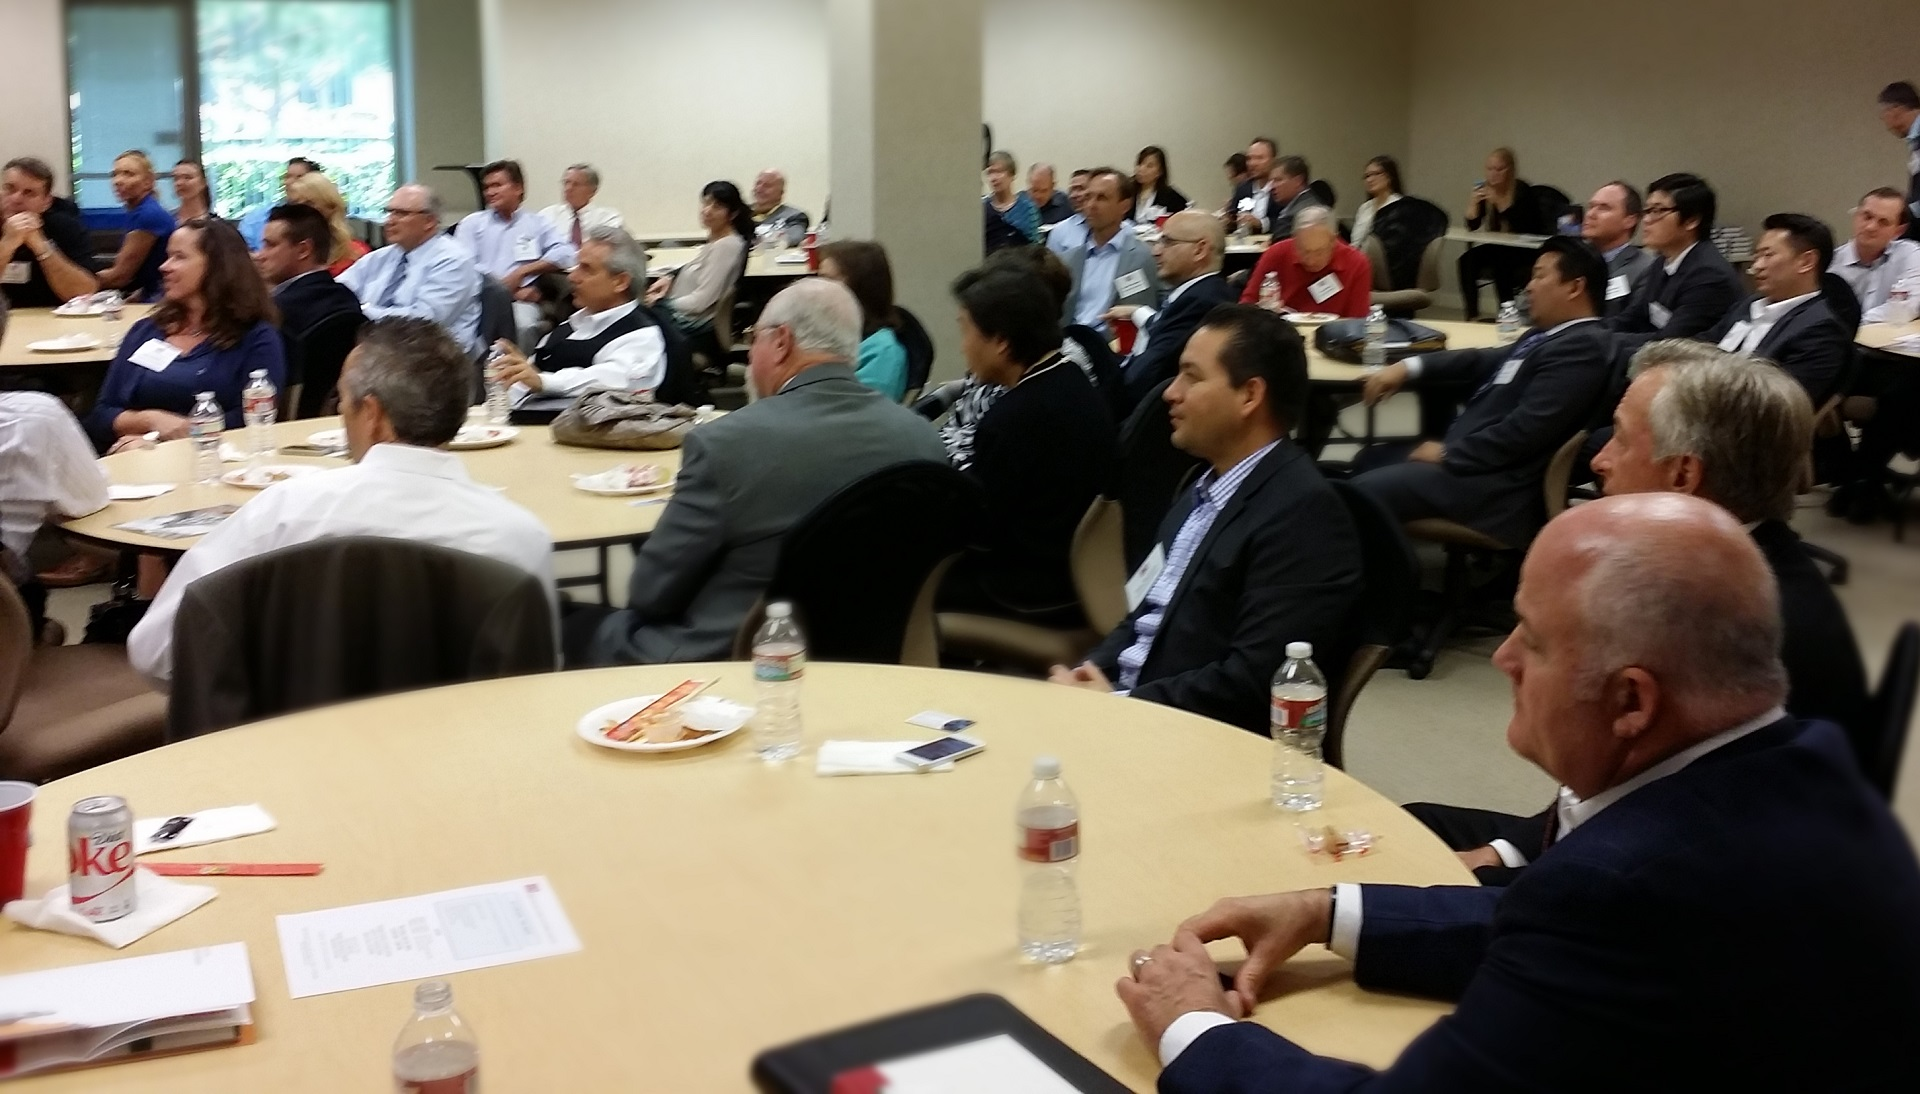 Business Leaders at Networking Luncheon